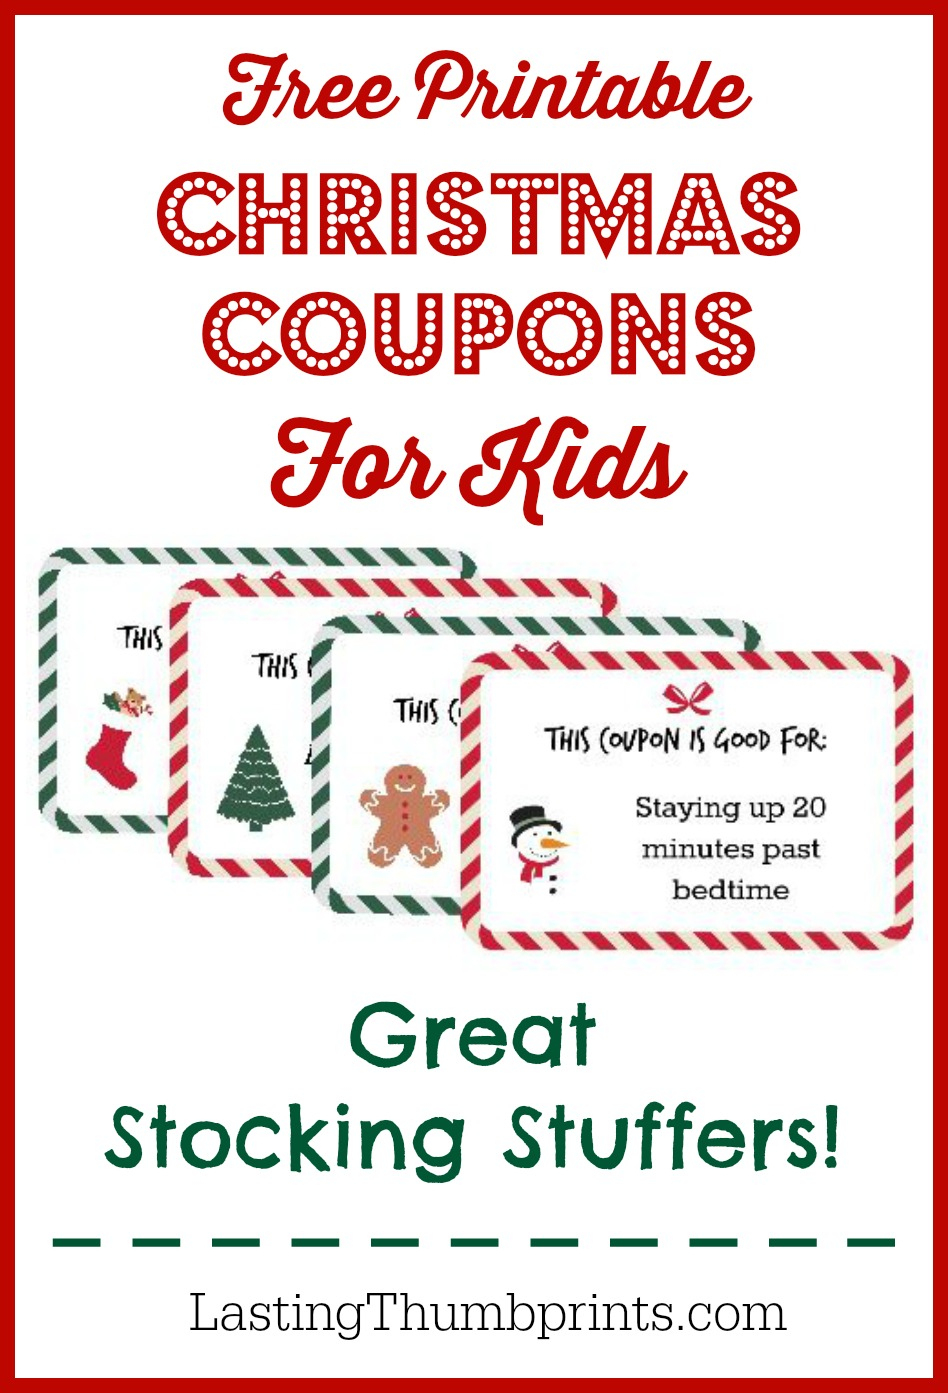 Christmas Coupons For Kids - Free Printable! - Free Printable Coupons 2014